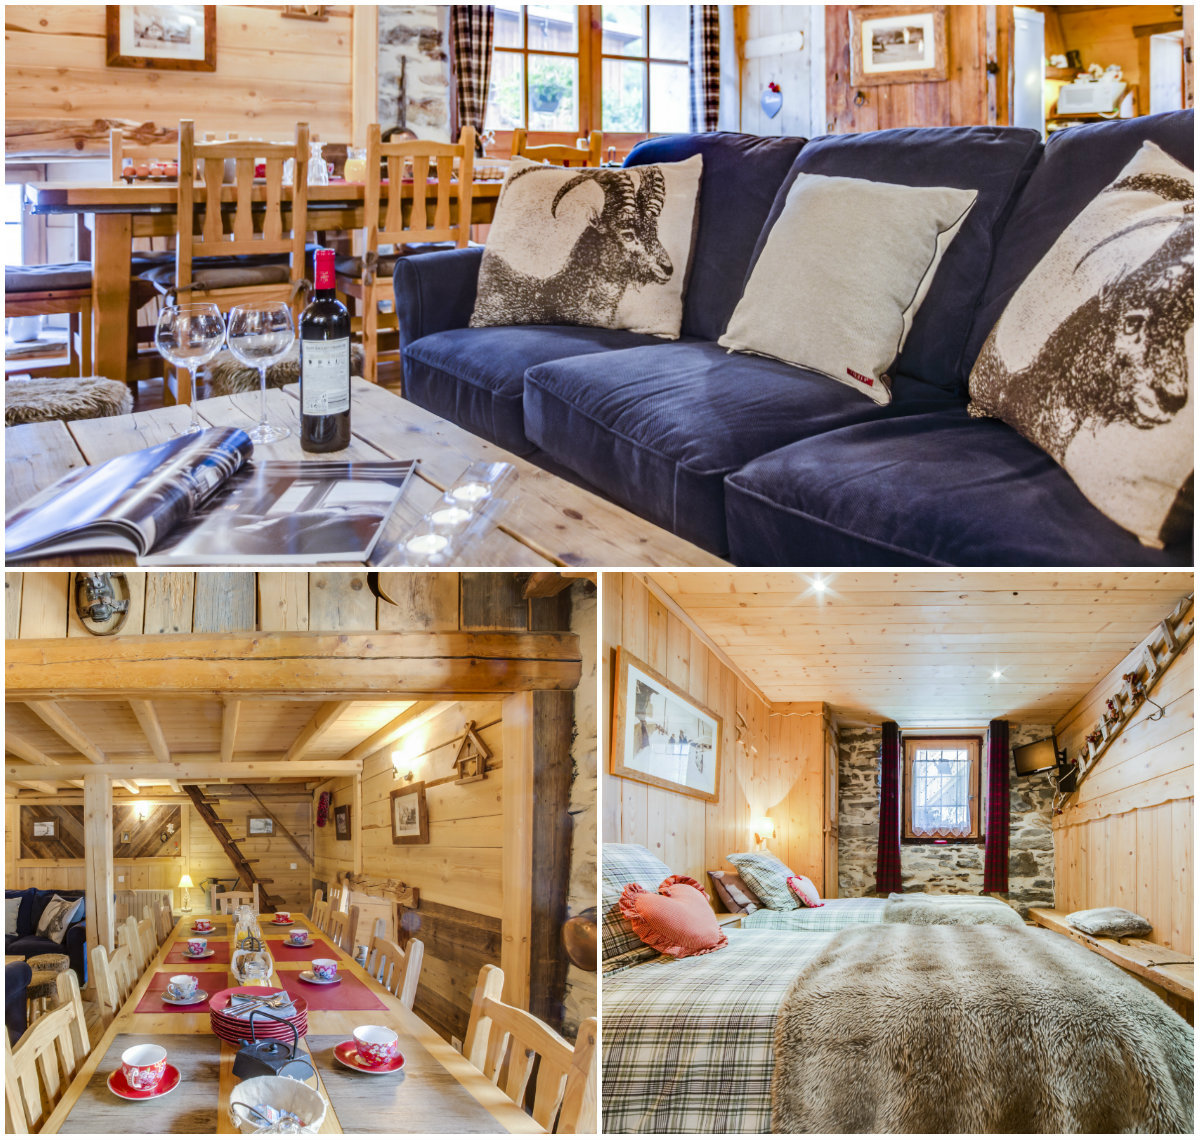 Catered chalet Ariane in Tignes les Brevieres